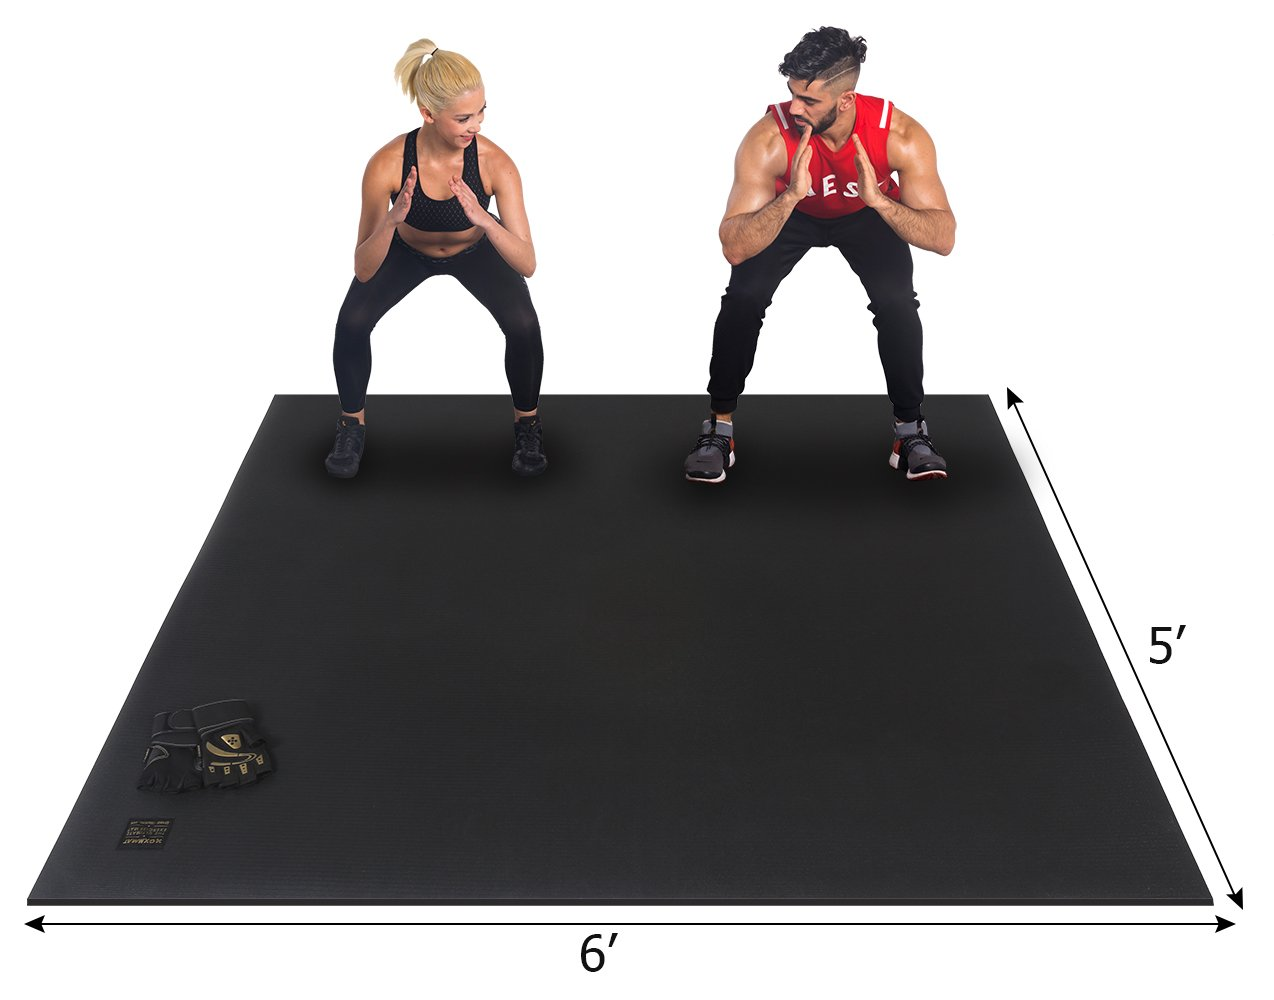 Premium Large Exercise Mat 72''x60''(6'x5') x 7mm Ultra Durable, Non-Slip, Workout Mats for Home Gym Flooring - Plyo, HIIT, Jump, Cardio Mat